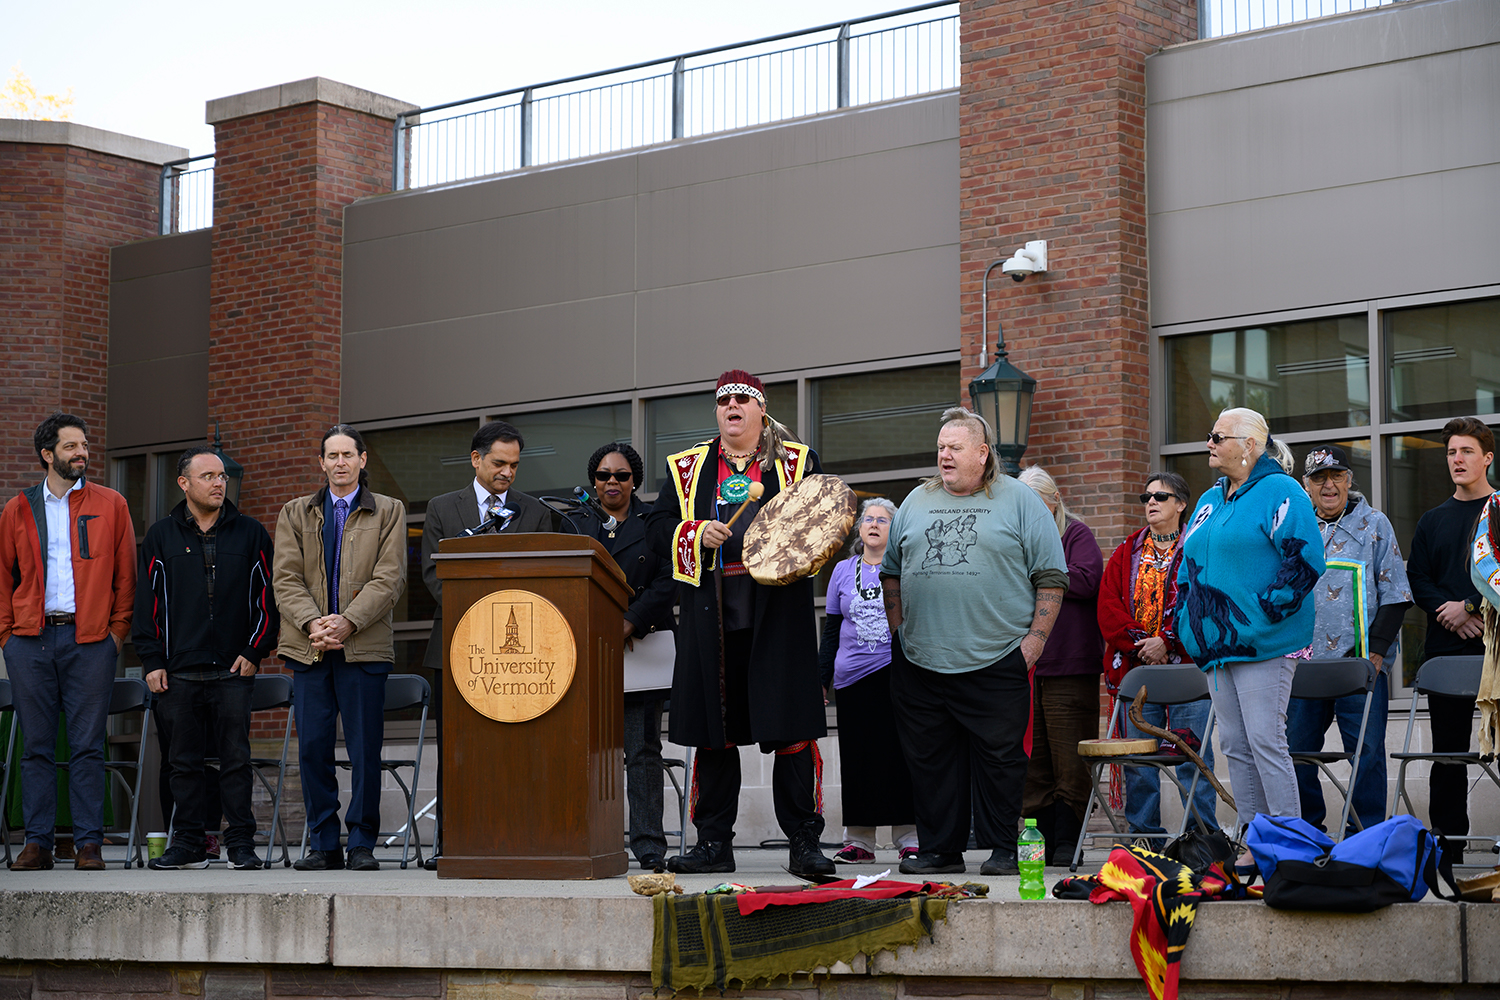 Members of the Abenaki Tribe and Burlington community participate in Indigenous People's Day celebrations, Oct. 15. Two Abenaki Chiefs, Chief Don Stevens and Chief Roger Longtoe Sheehan, as well as Lt. Governor David Zuckerman and President Suresh Garimella, were present at the event.